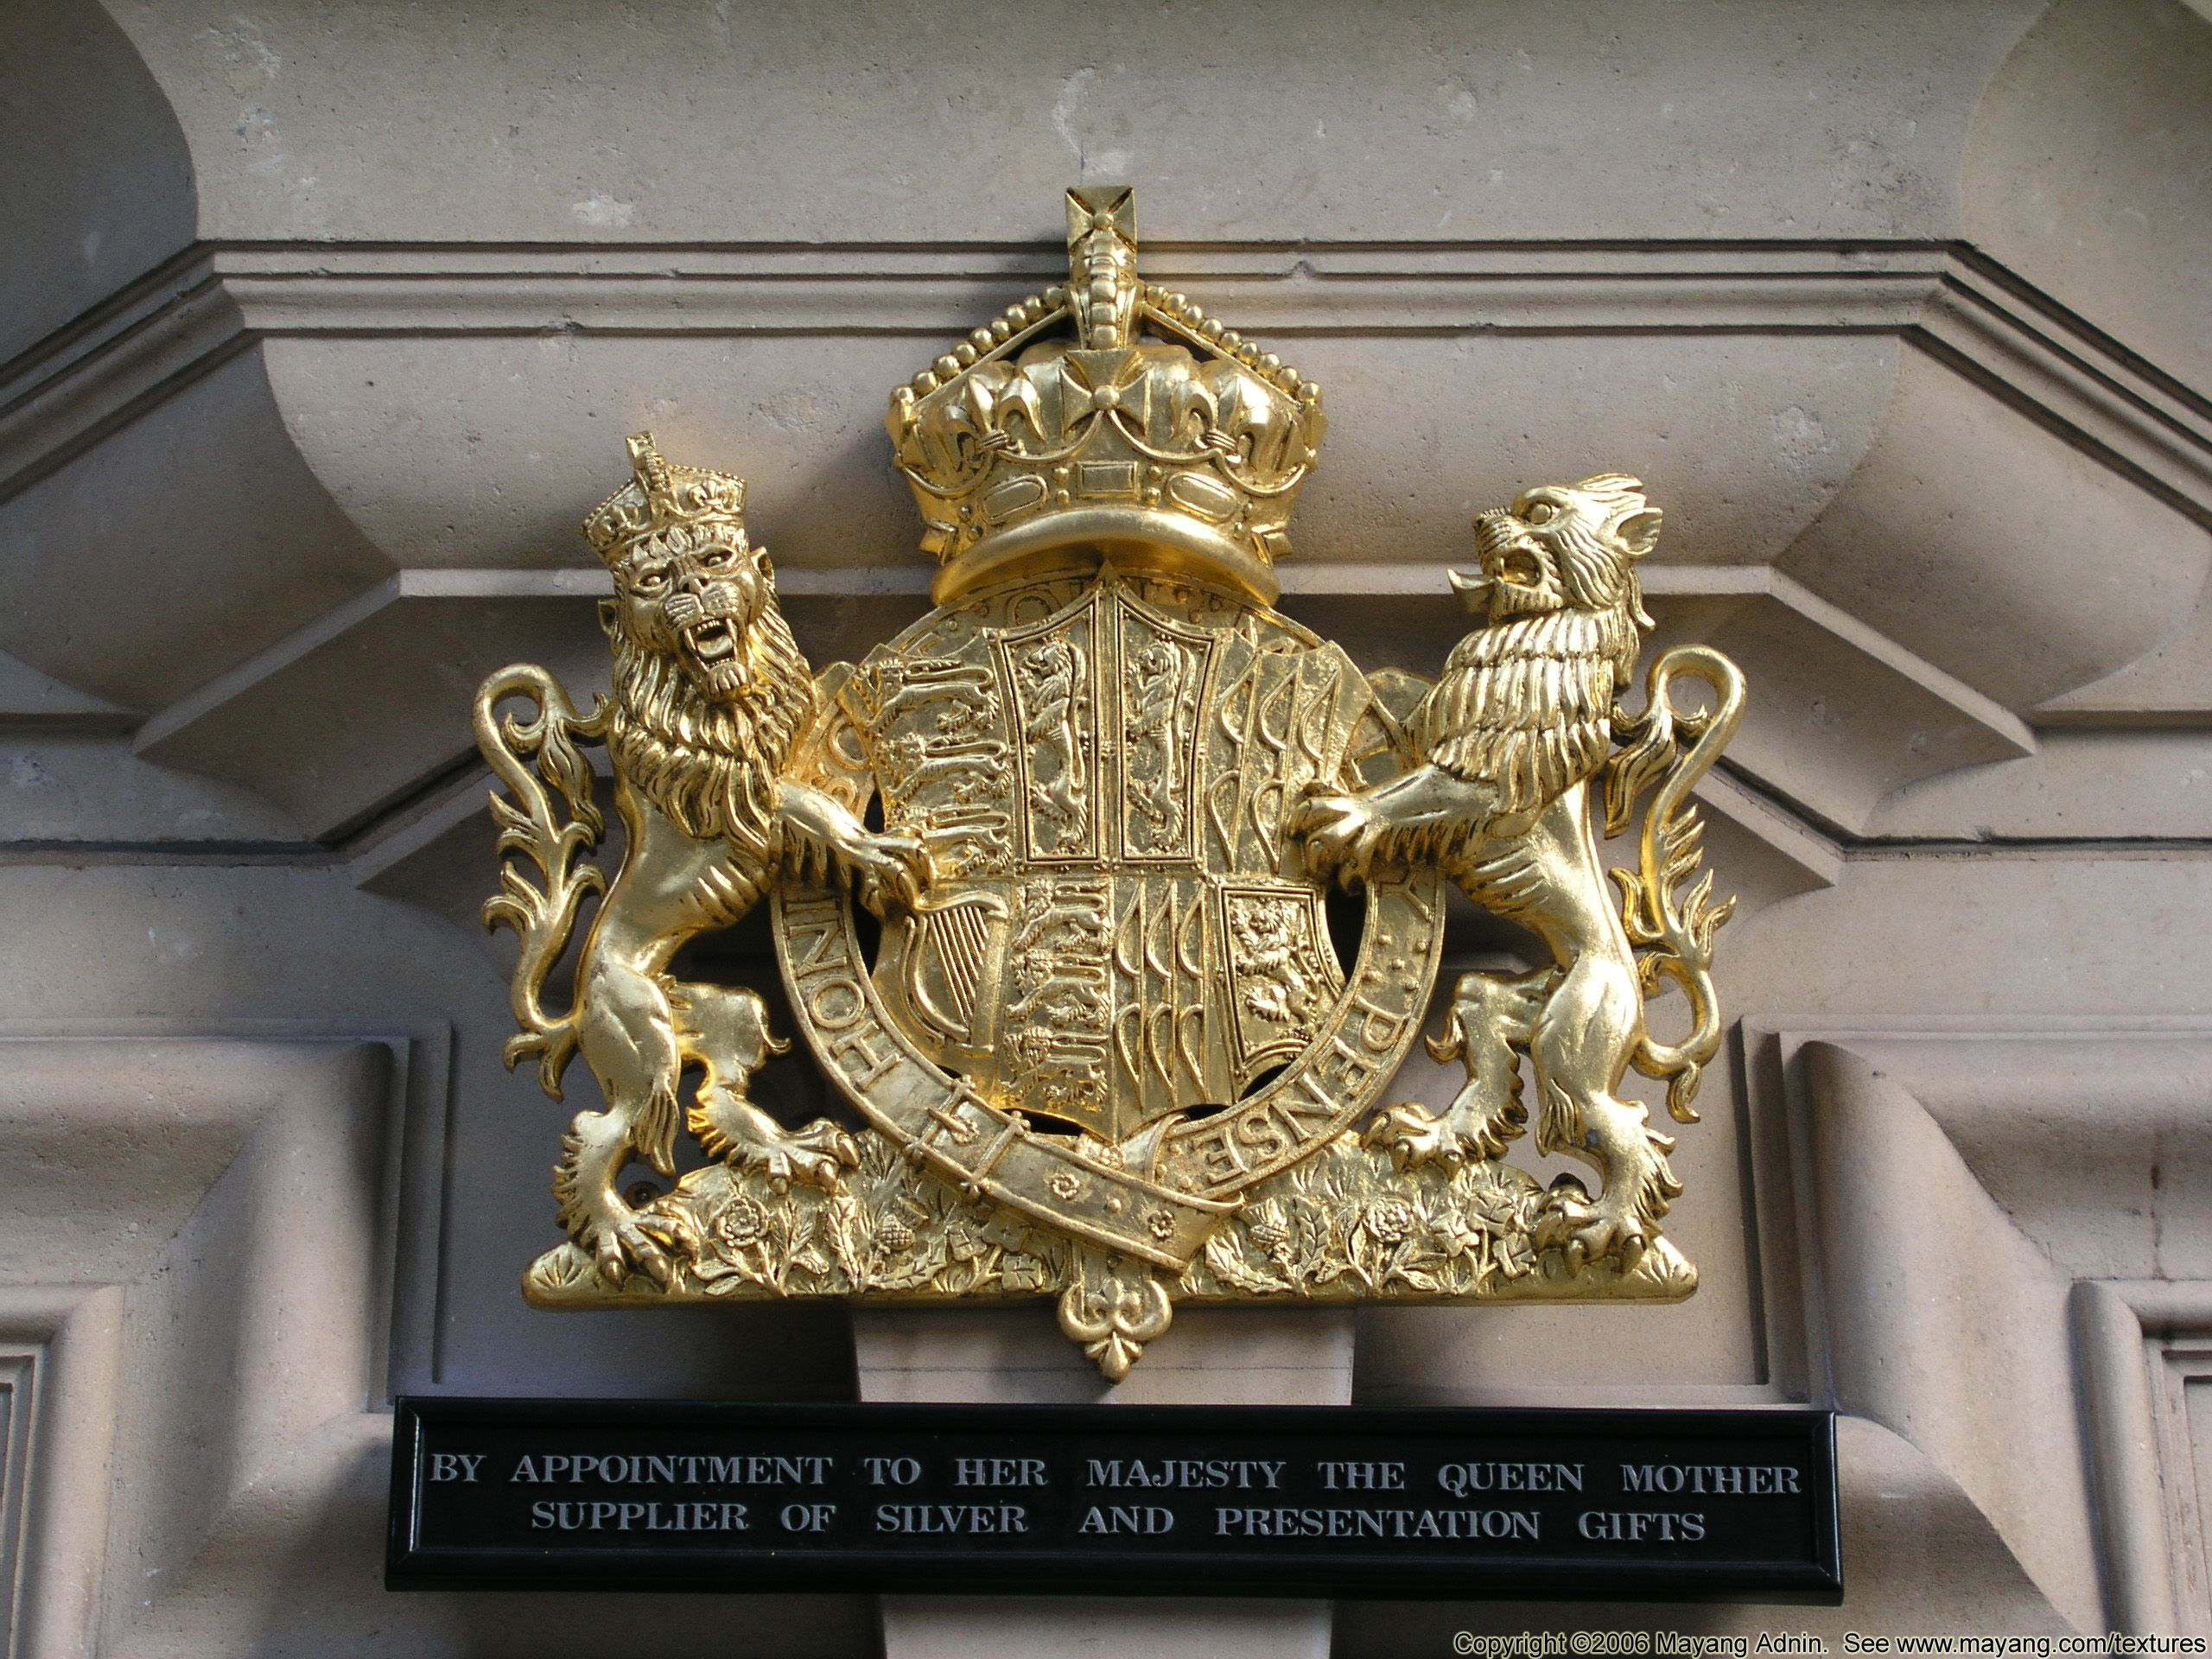 Royal warrant of queen elizabeth the queen mother i am a brit royal warrant of queen elizabeth the queen mother fandeluxe Choice Image